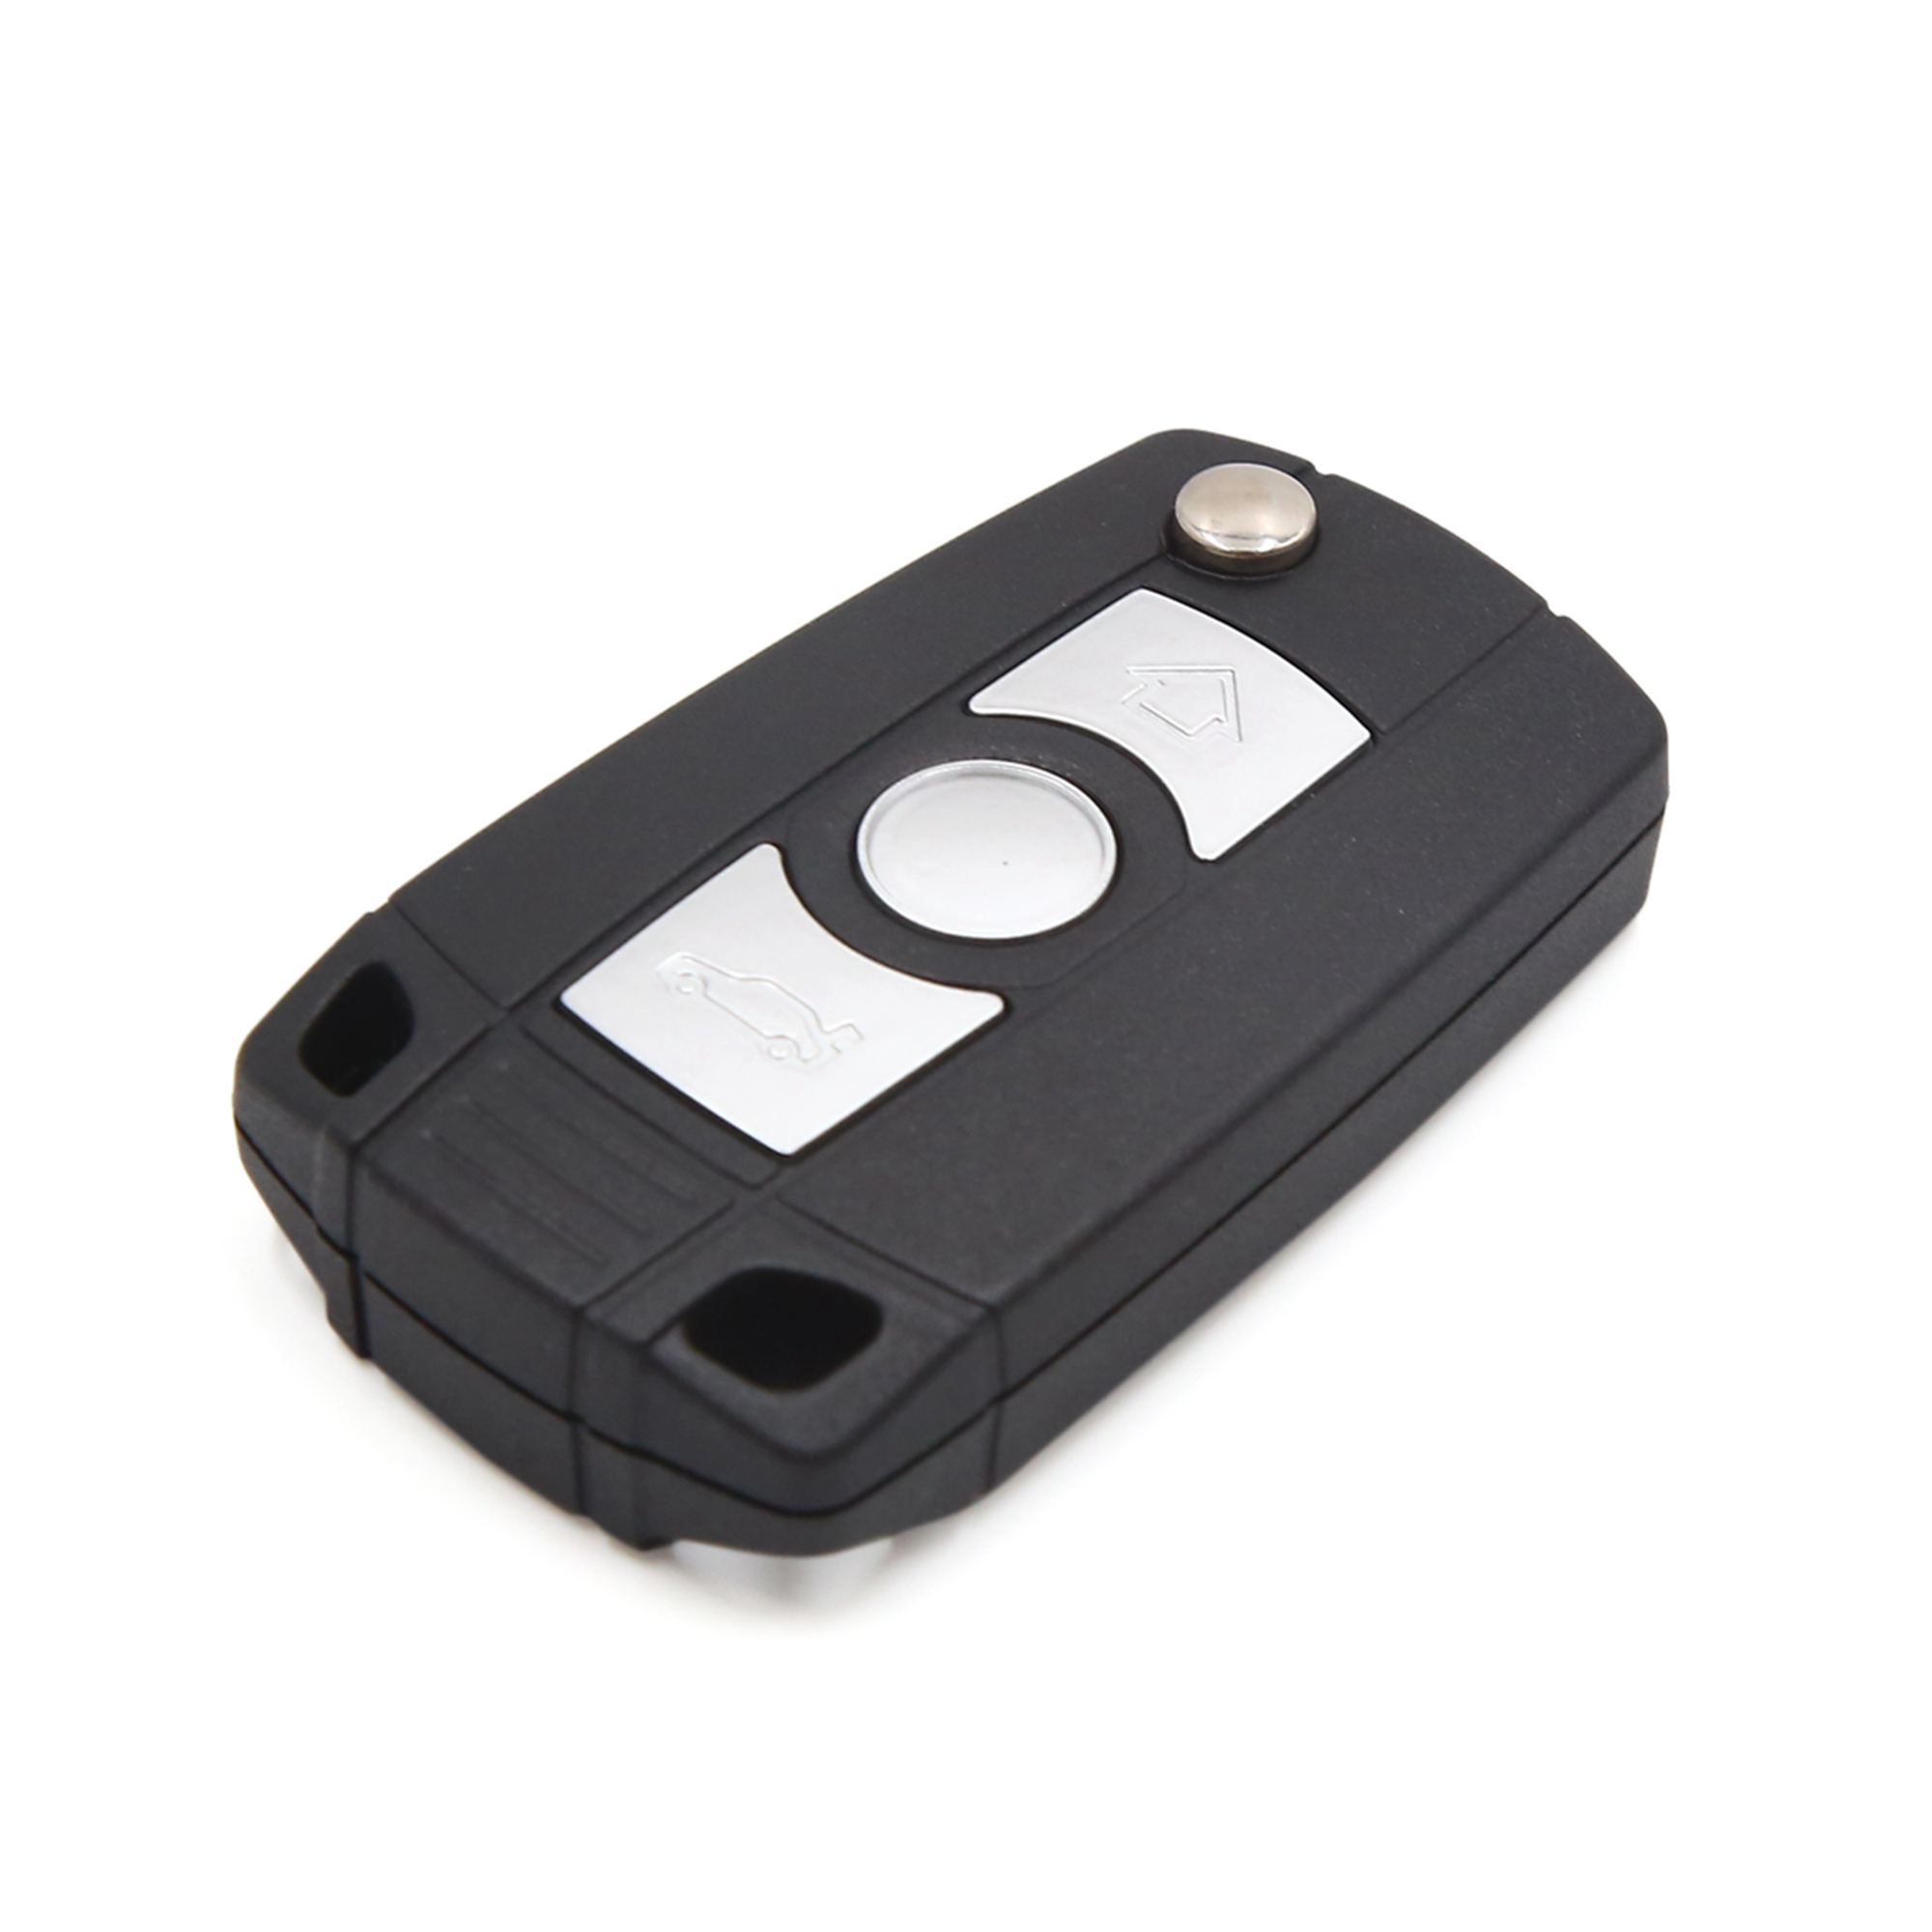 3 Buttons Flip Folding Uncut Key Remote Control Clicker Case Shell for BMW